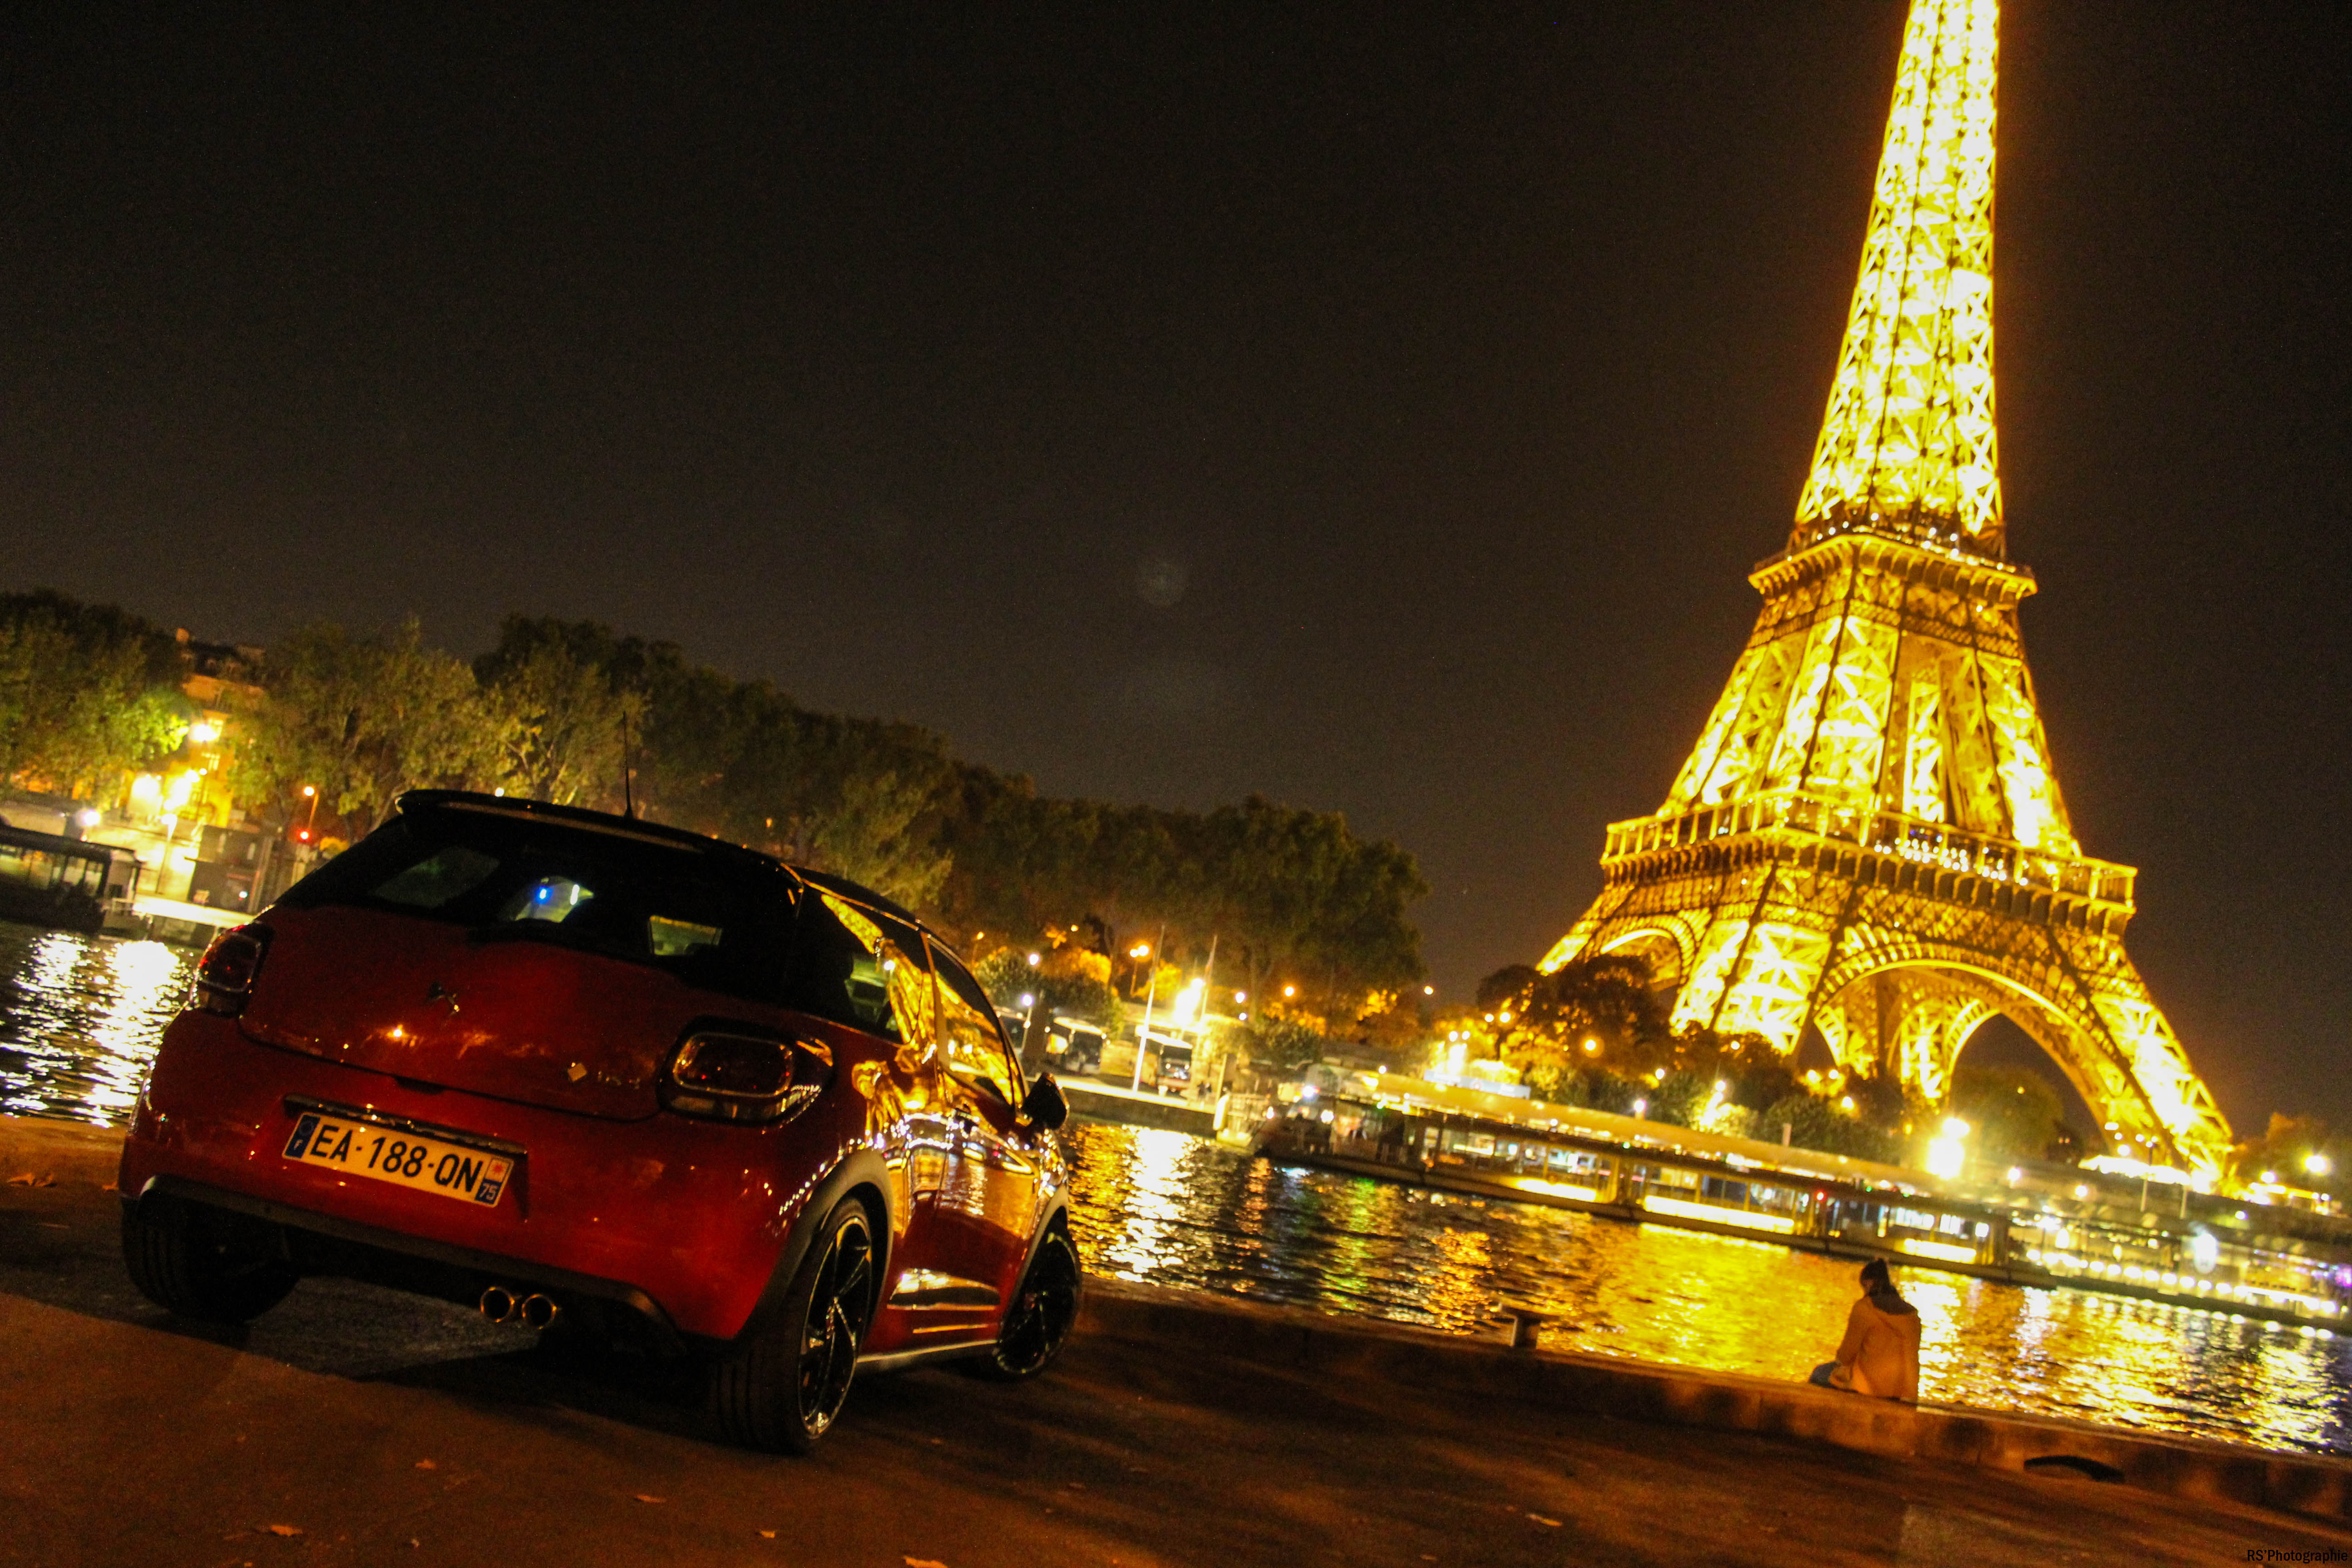 DS3PERFORMANCE6-ds3-performance-arriere-rear-Arnaud Demasier-RSPhotographie